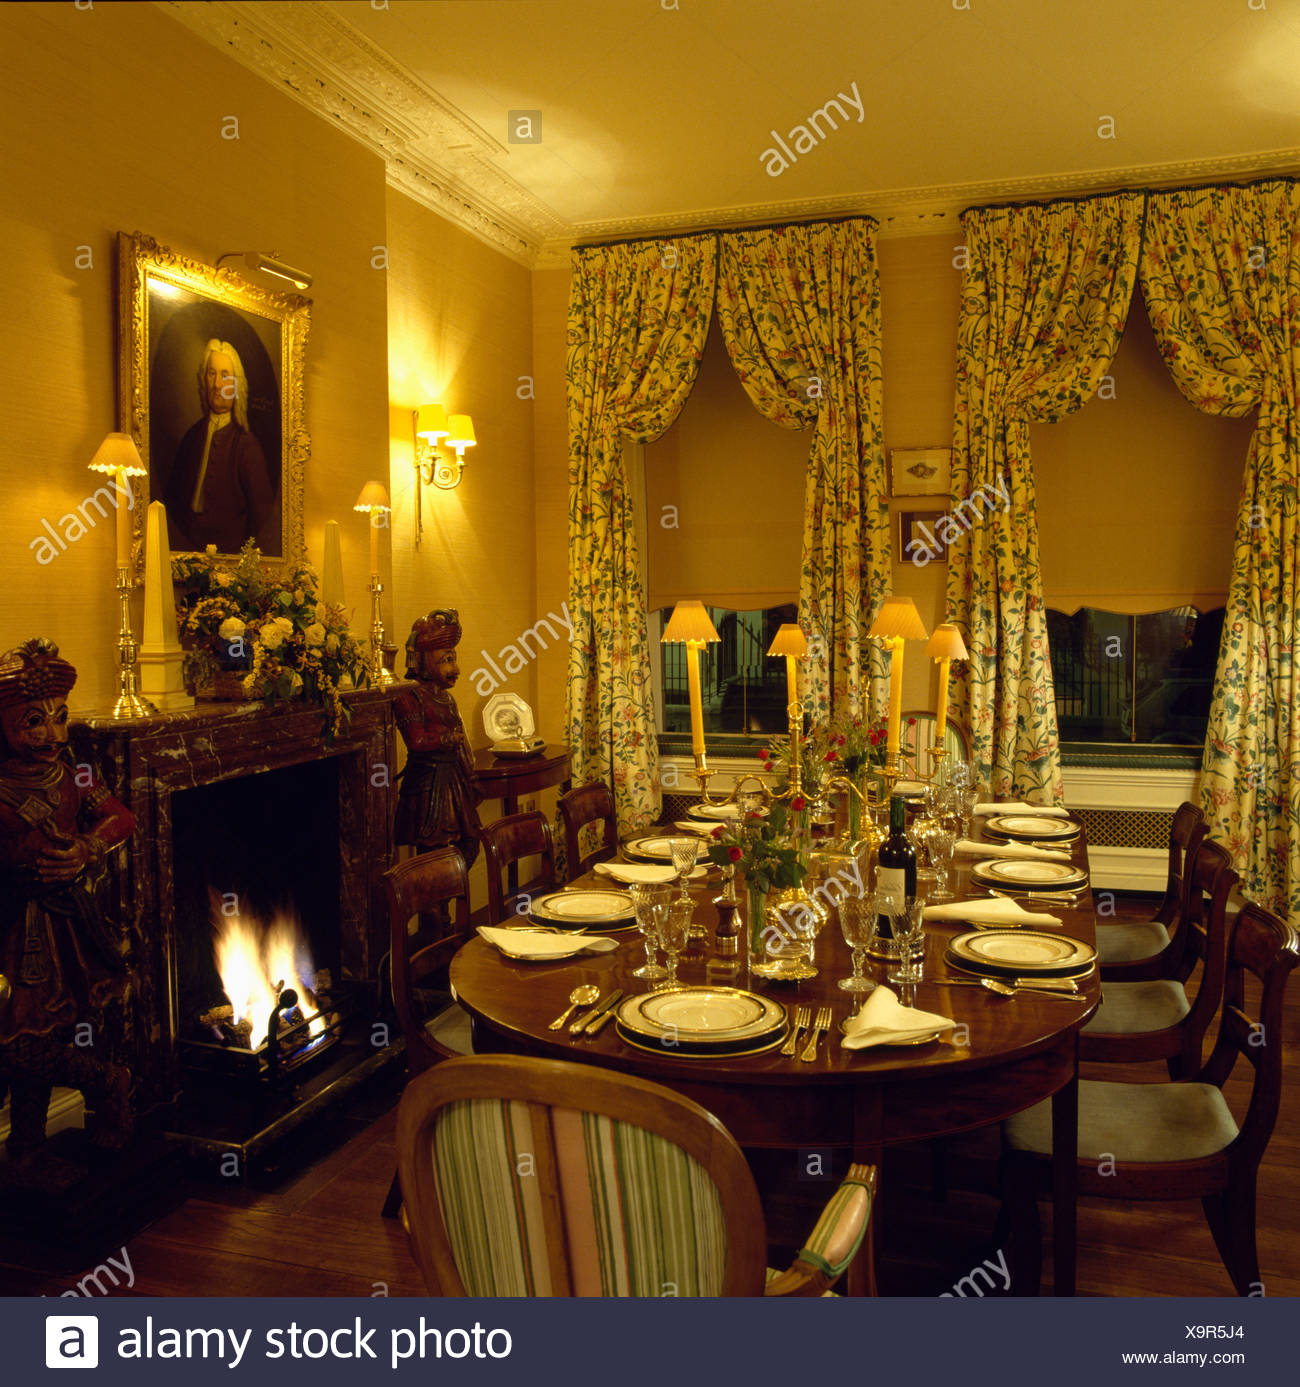 Antique Table In Yellow Dining Room With Blind And Floral Curtains